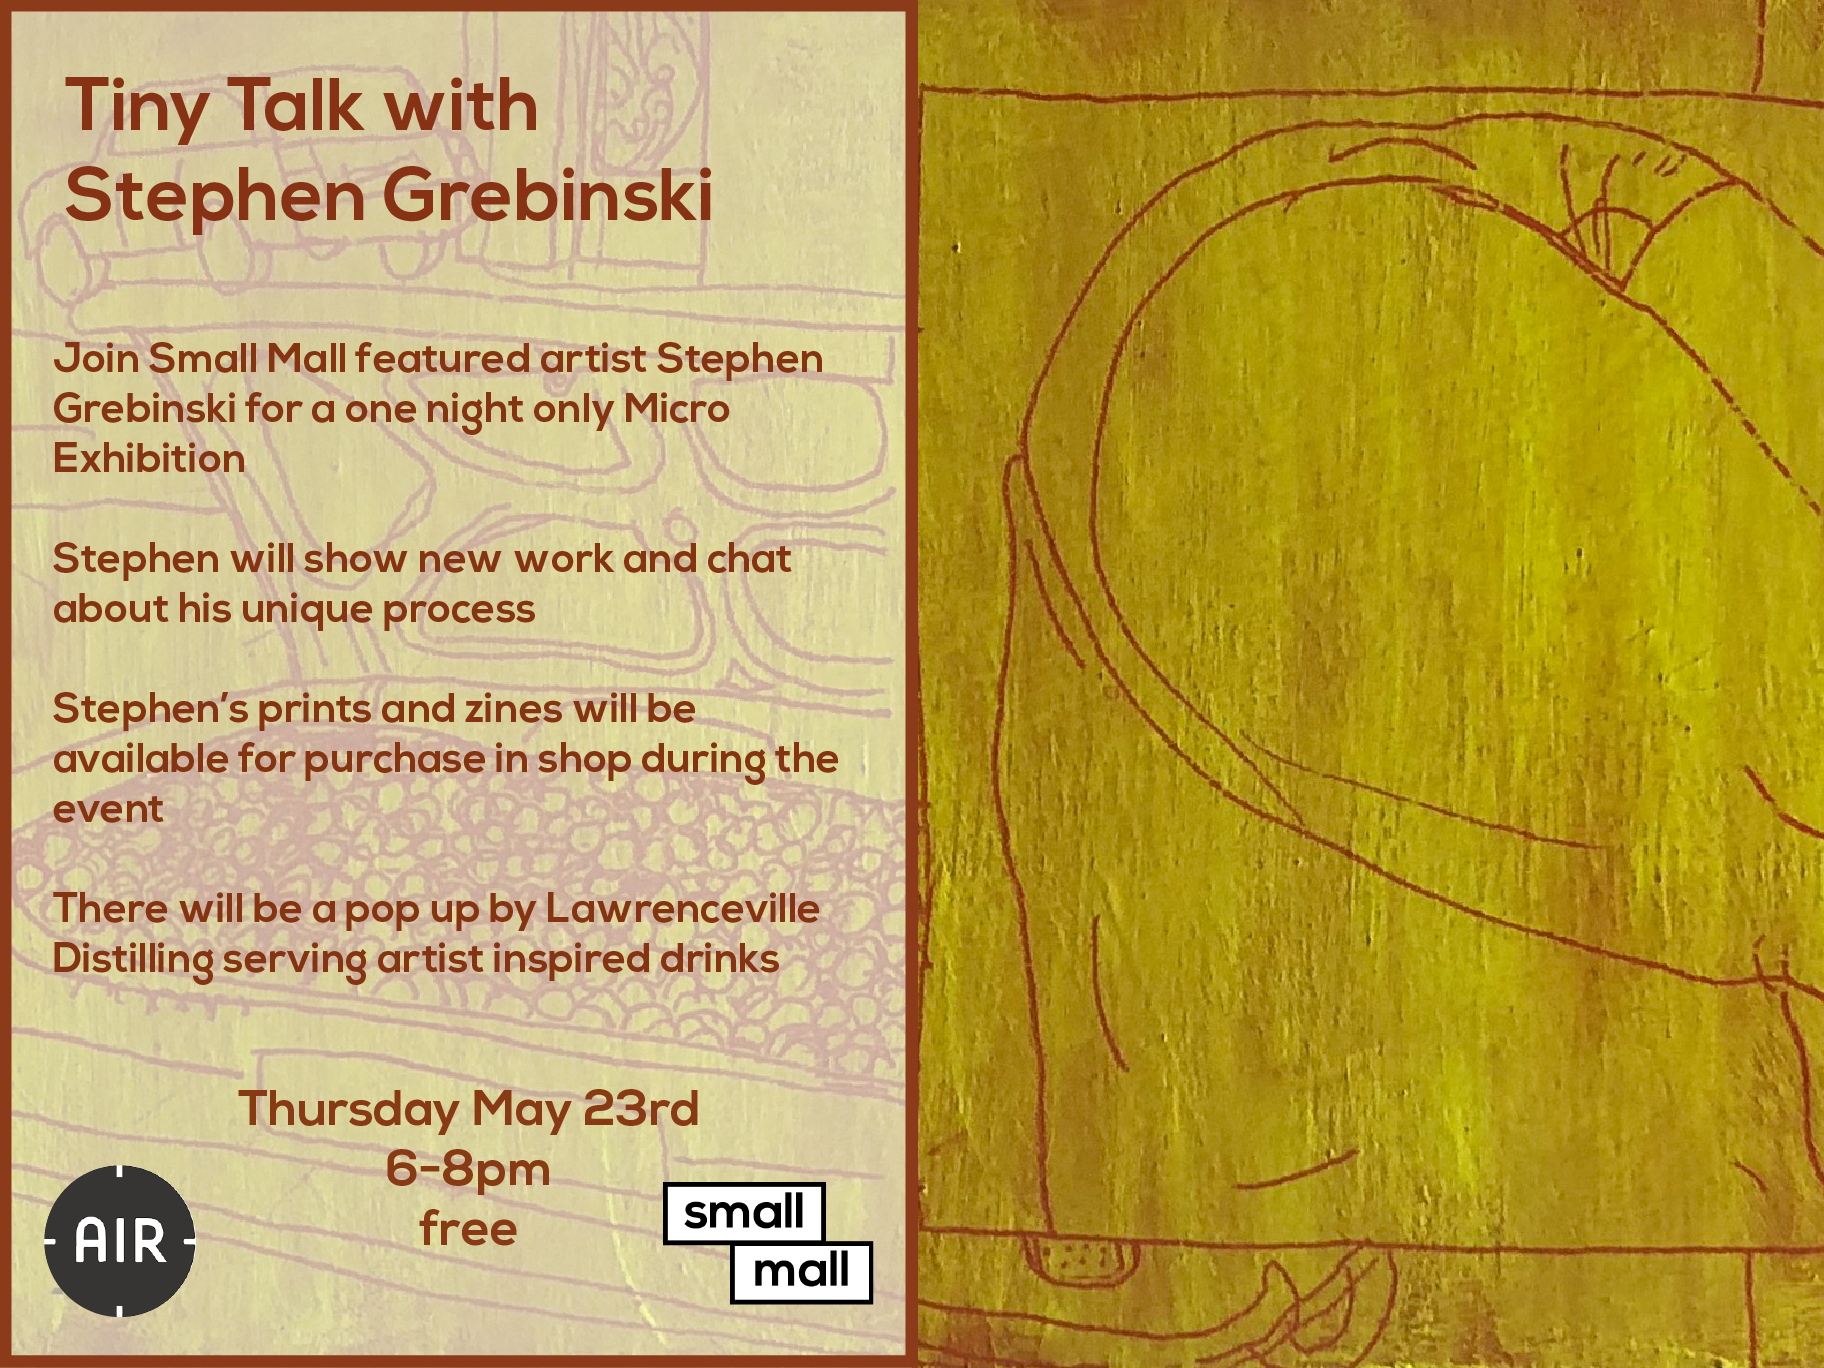 Stephen Grebinski joins us for our next Tiny Talk!